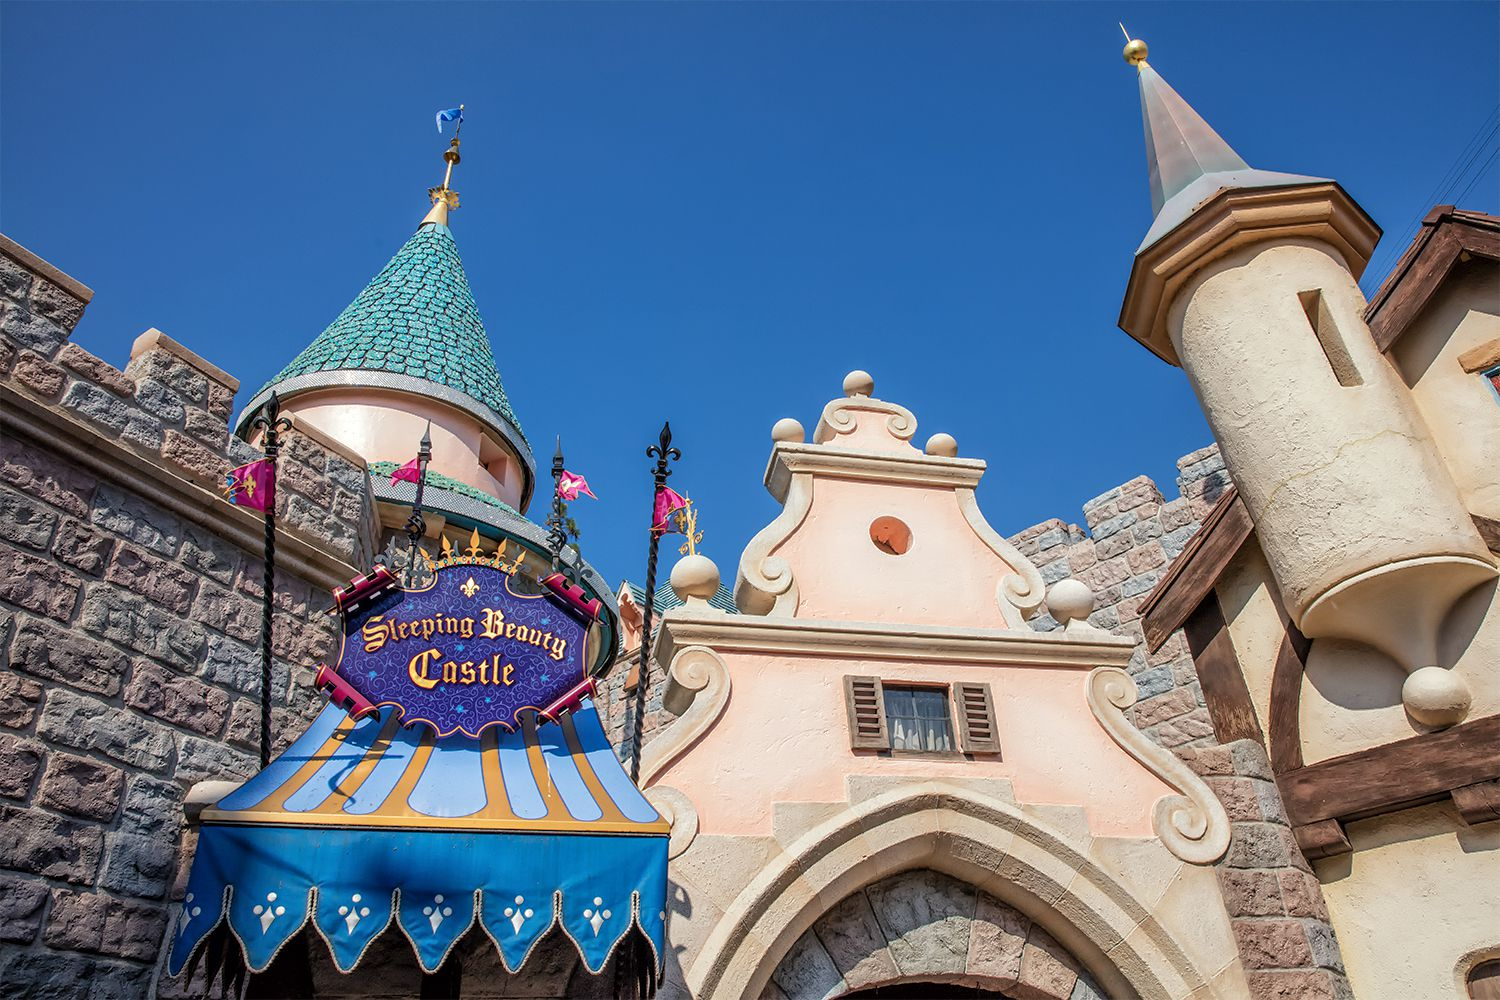 Sleeping Beauty's Castle: Things You Need to Know